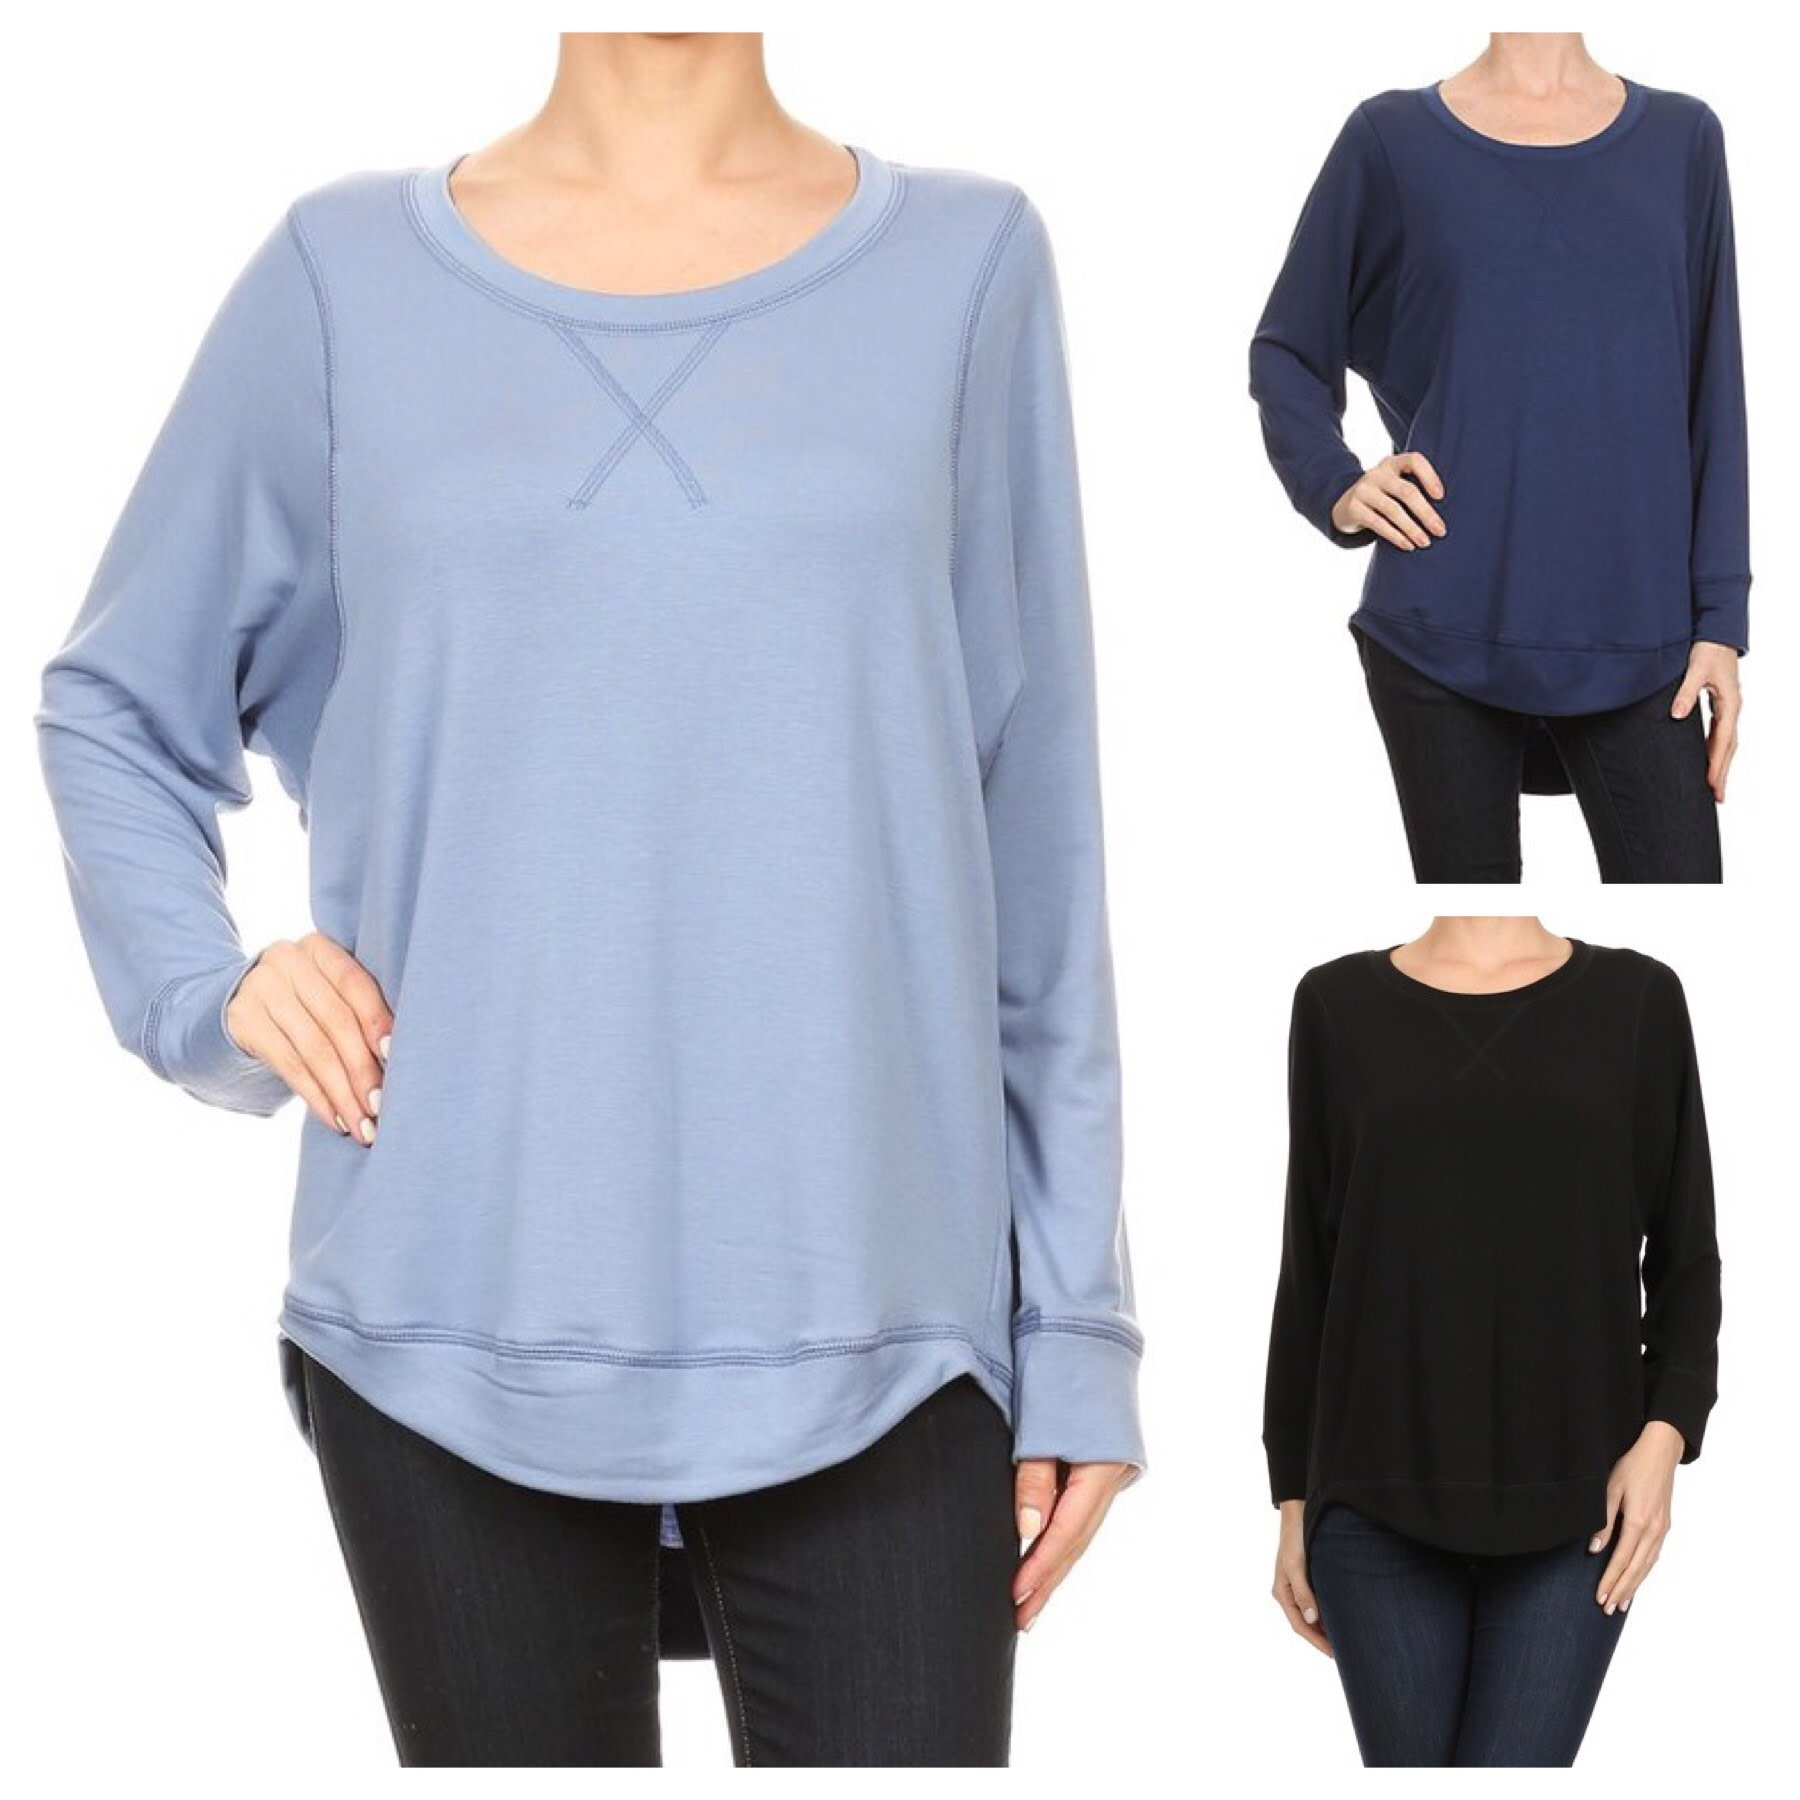 Solid Top with Cresent Hem